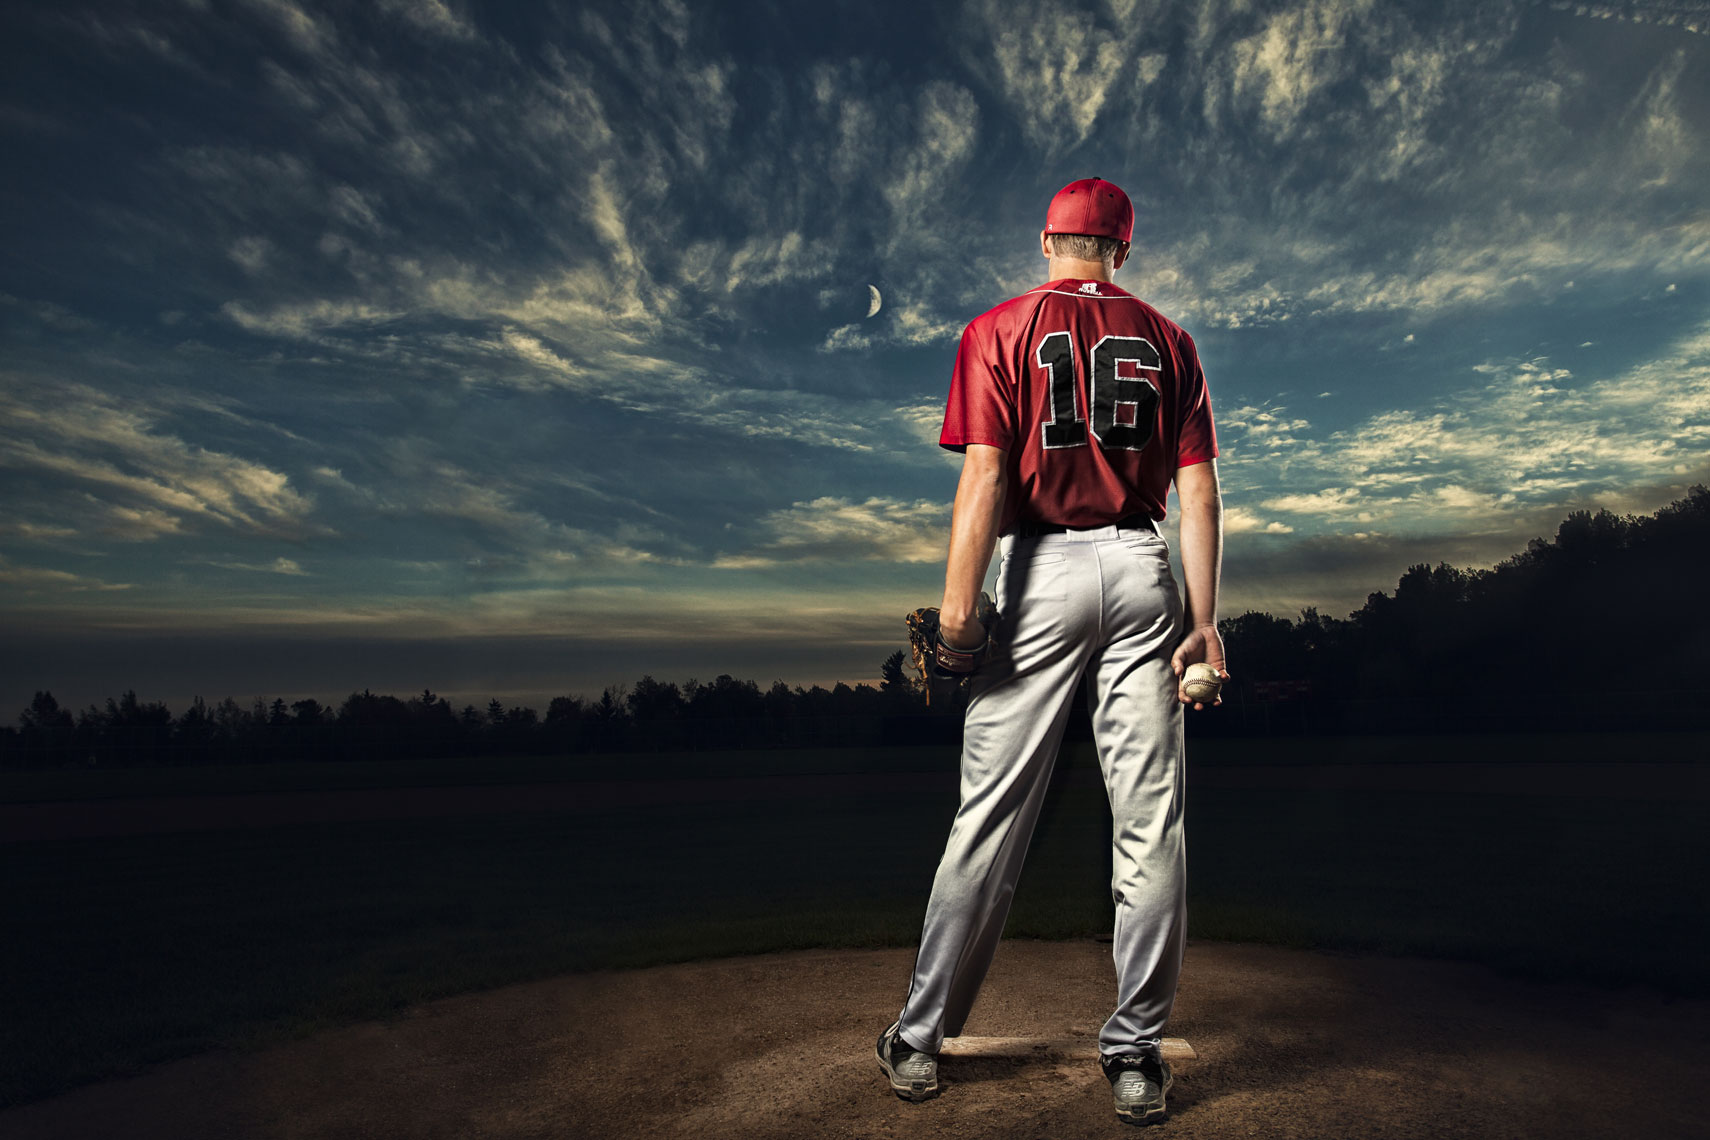 Baseball pitcher/backside/sunset/lifestyle photography